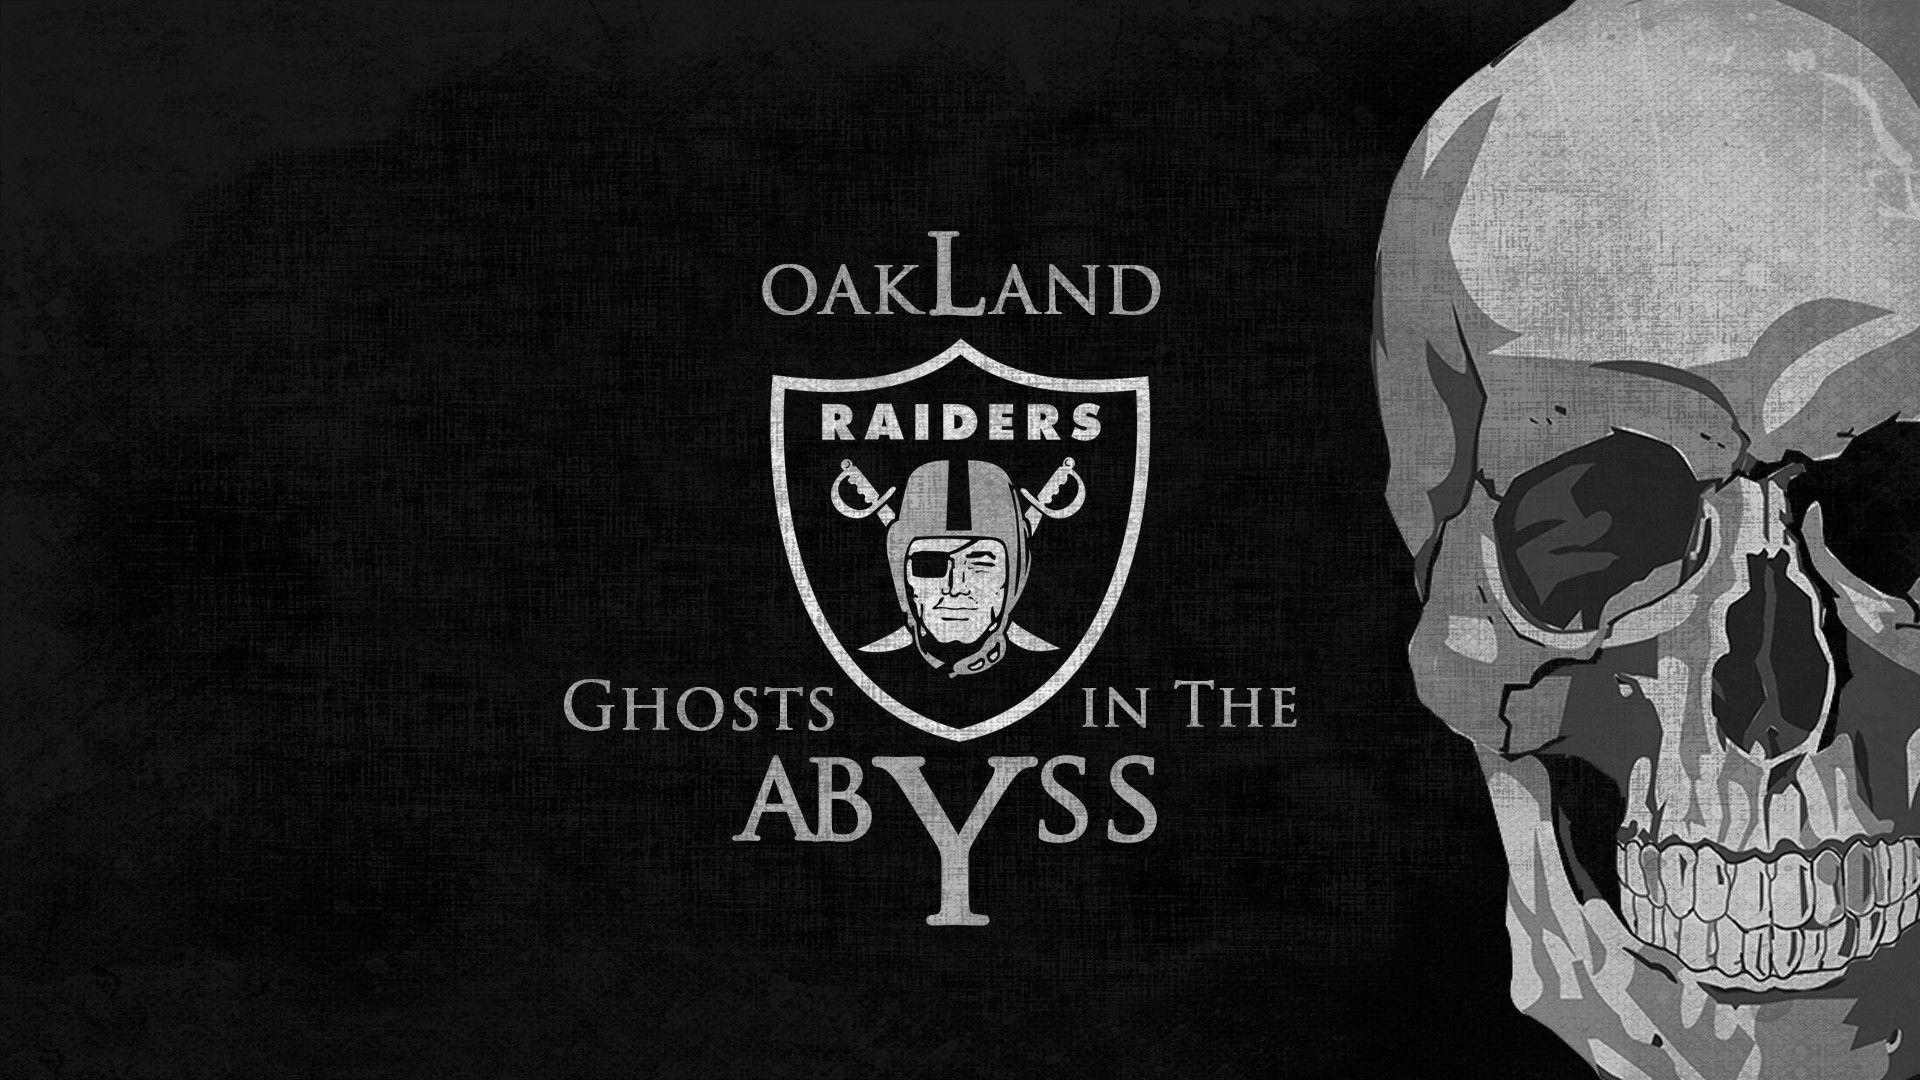 Oakland Raiders uhd wallpapers